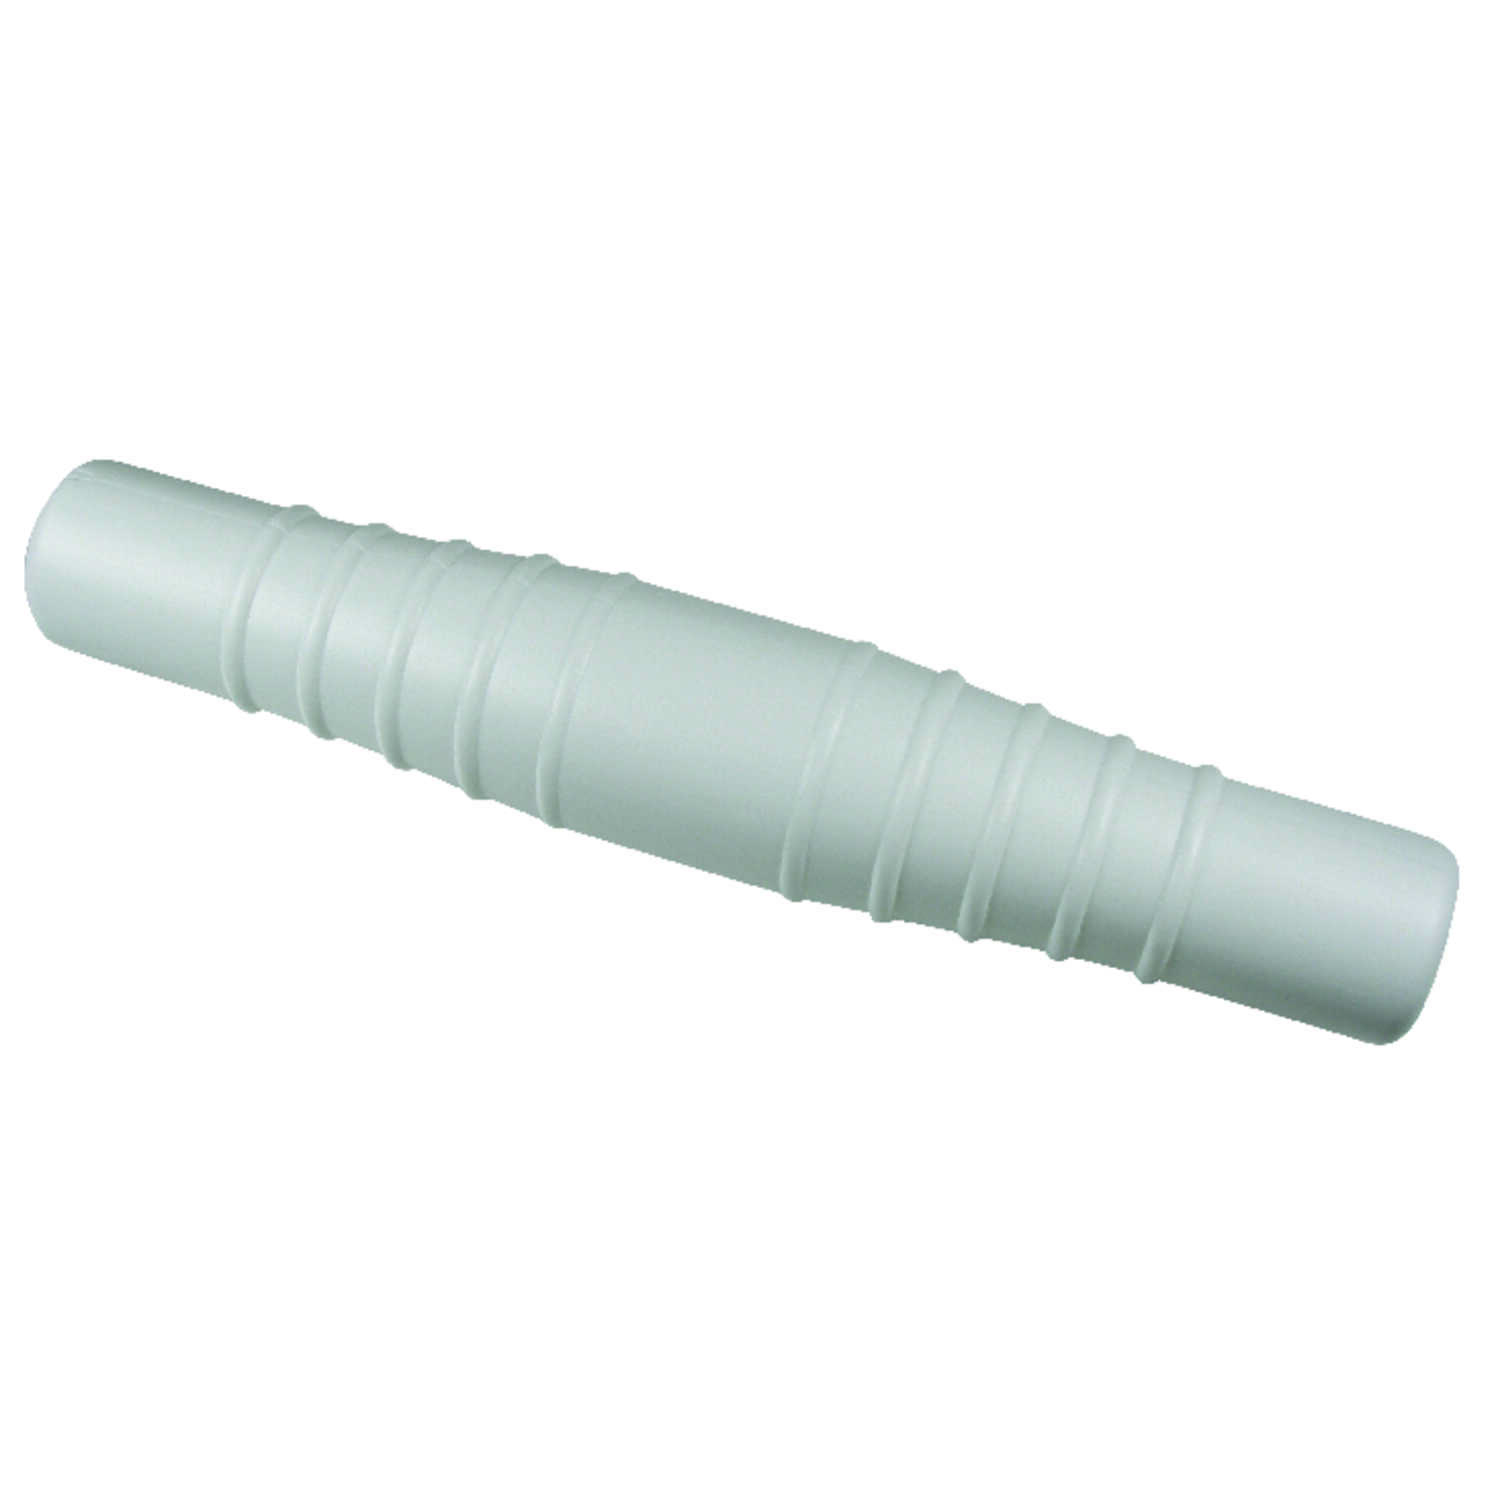 Ace  Pool Hose Connector  1-1/4 in. W x 9 in. L